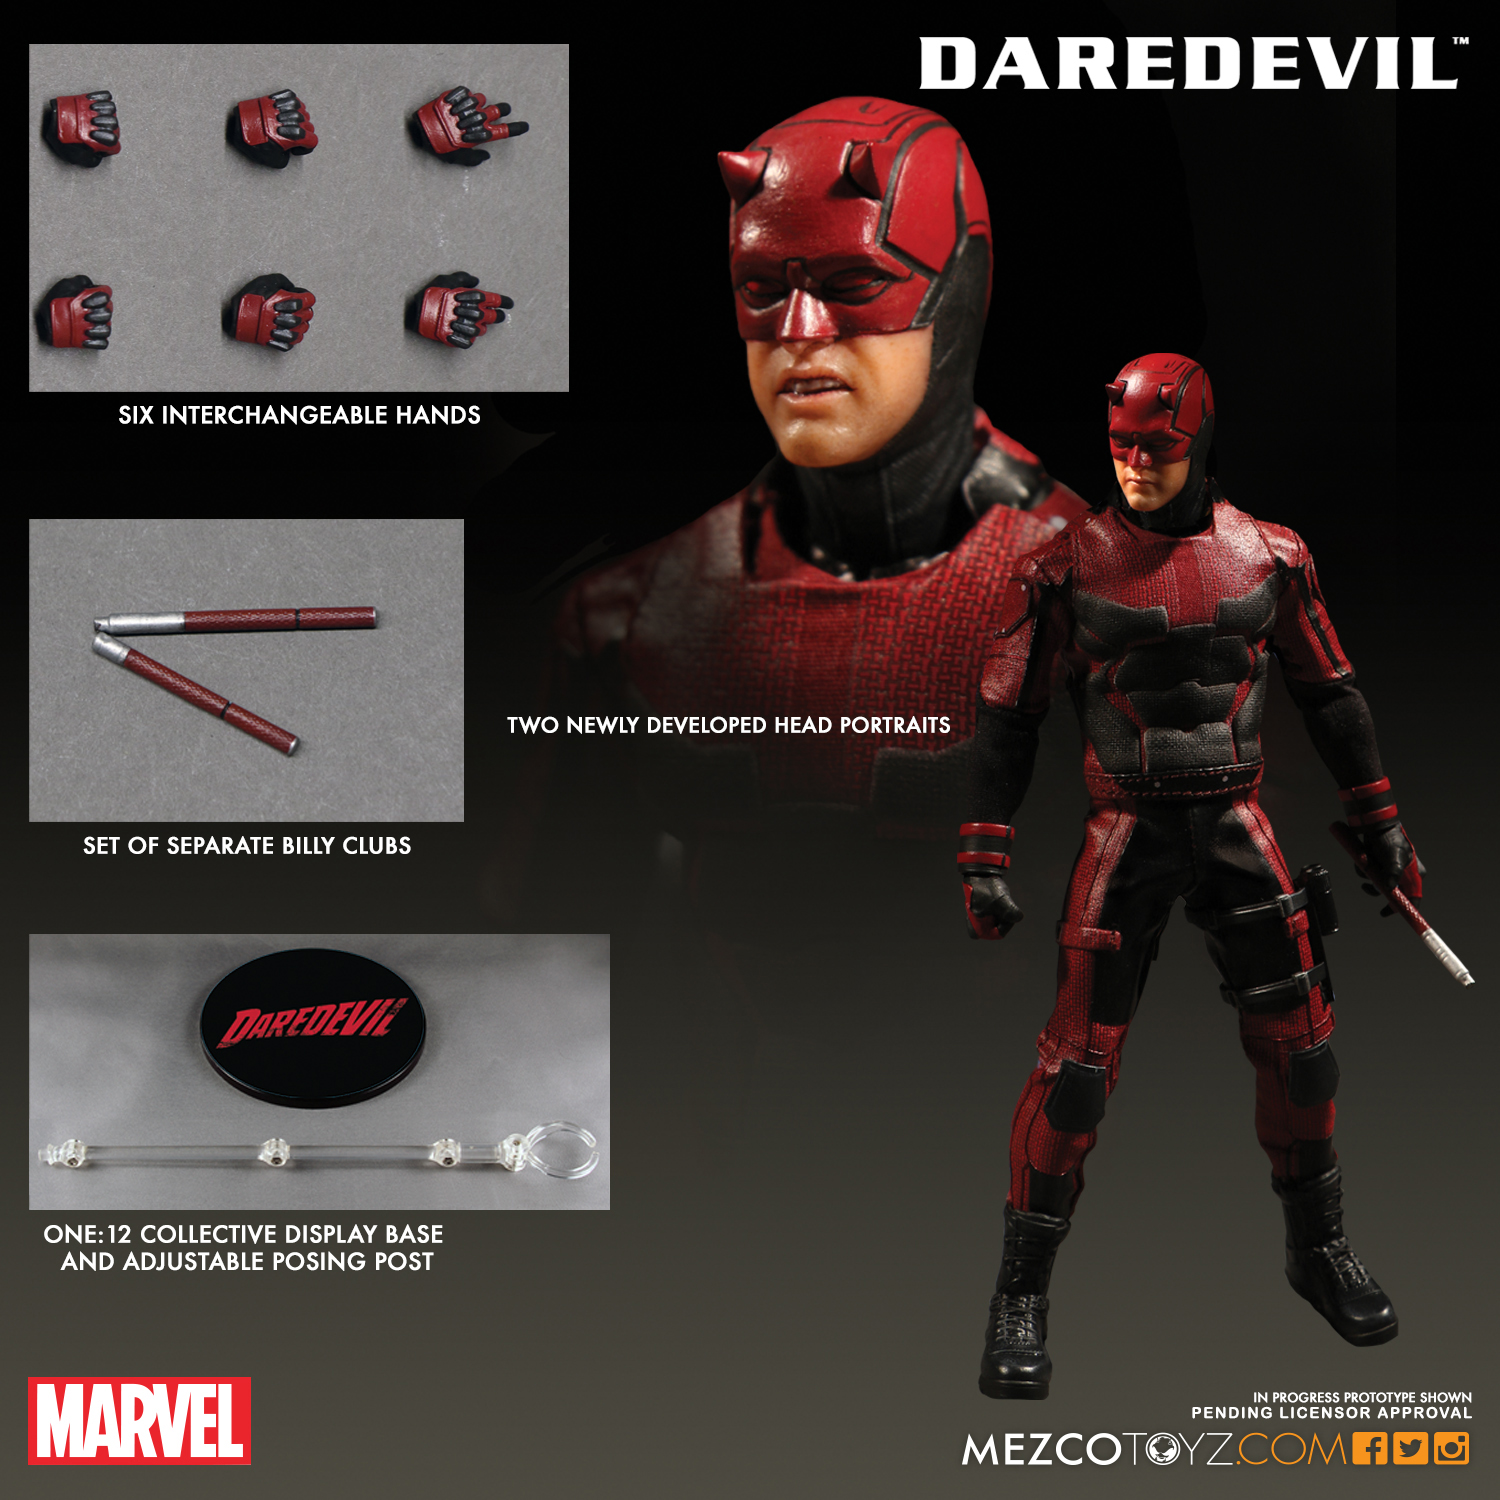 Mezco 2017 One:12 Daredevil